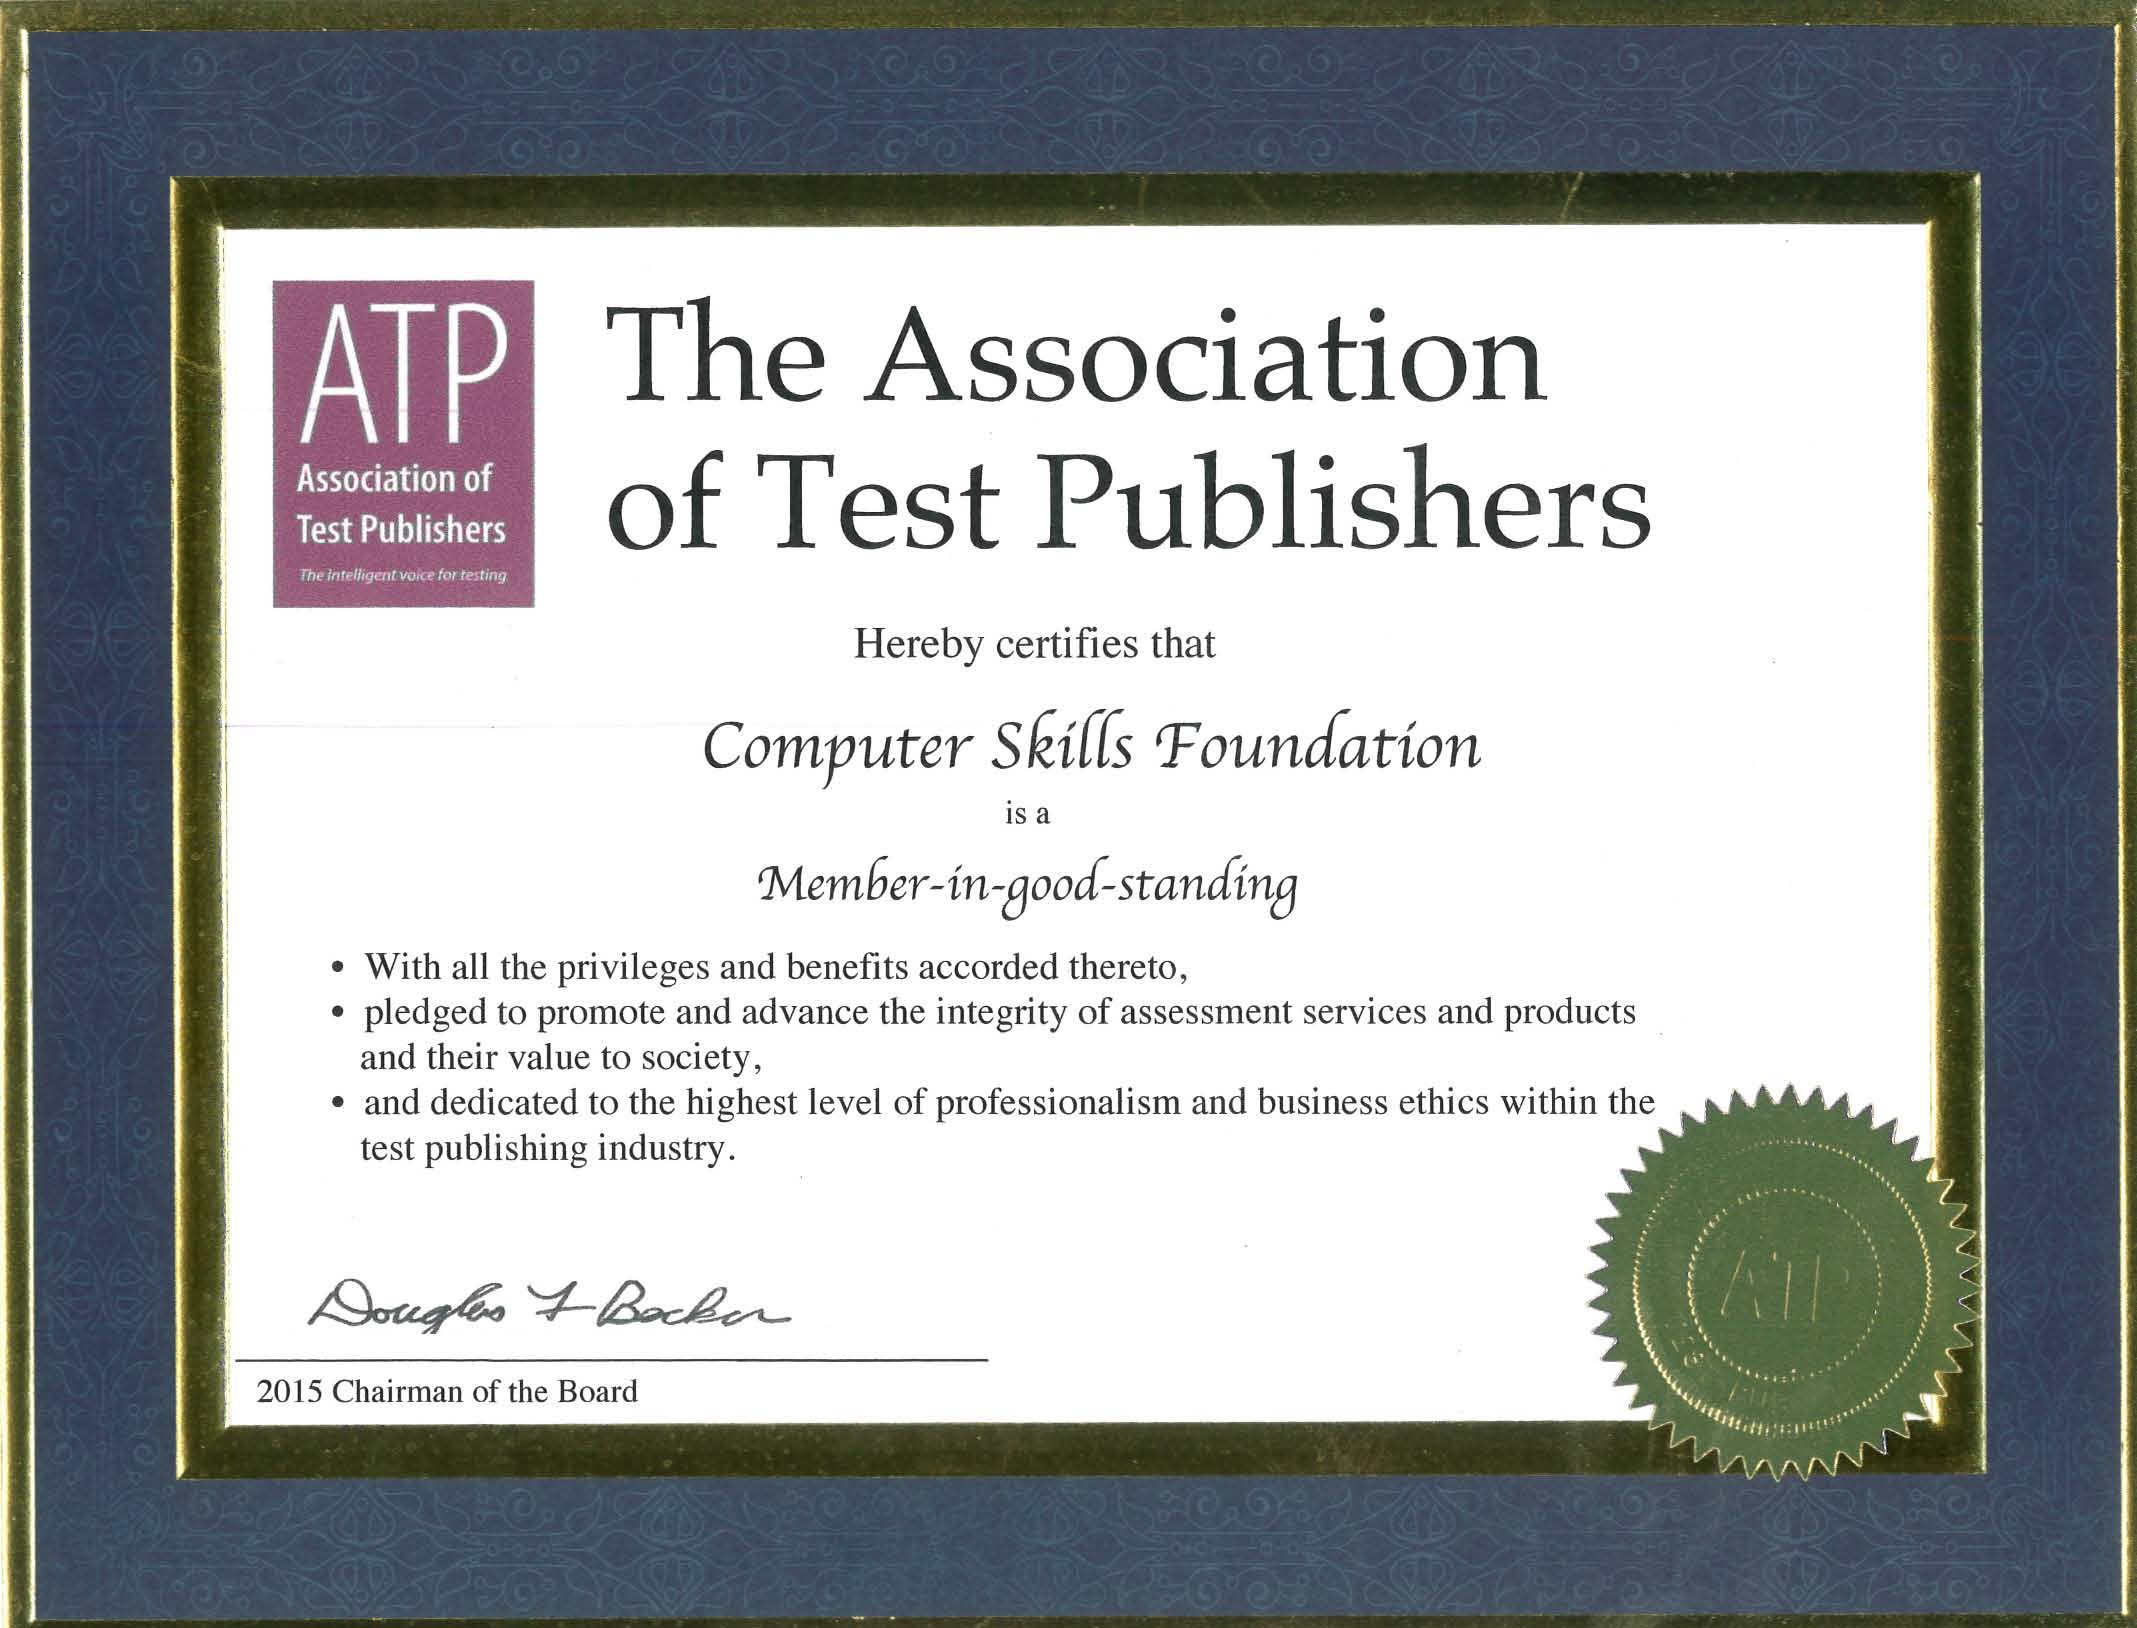 Computer Skills Foundation is a Member-in-good-standing